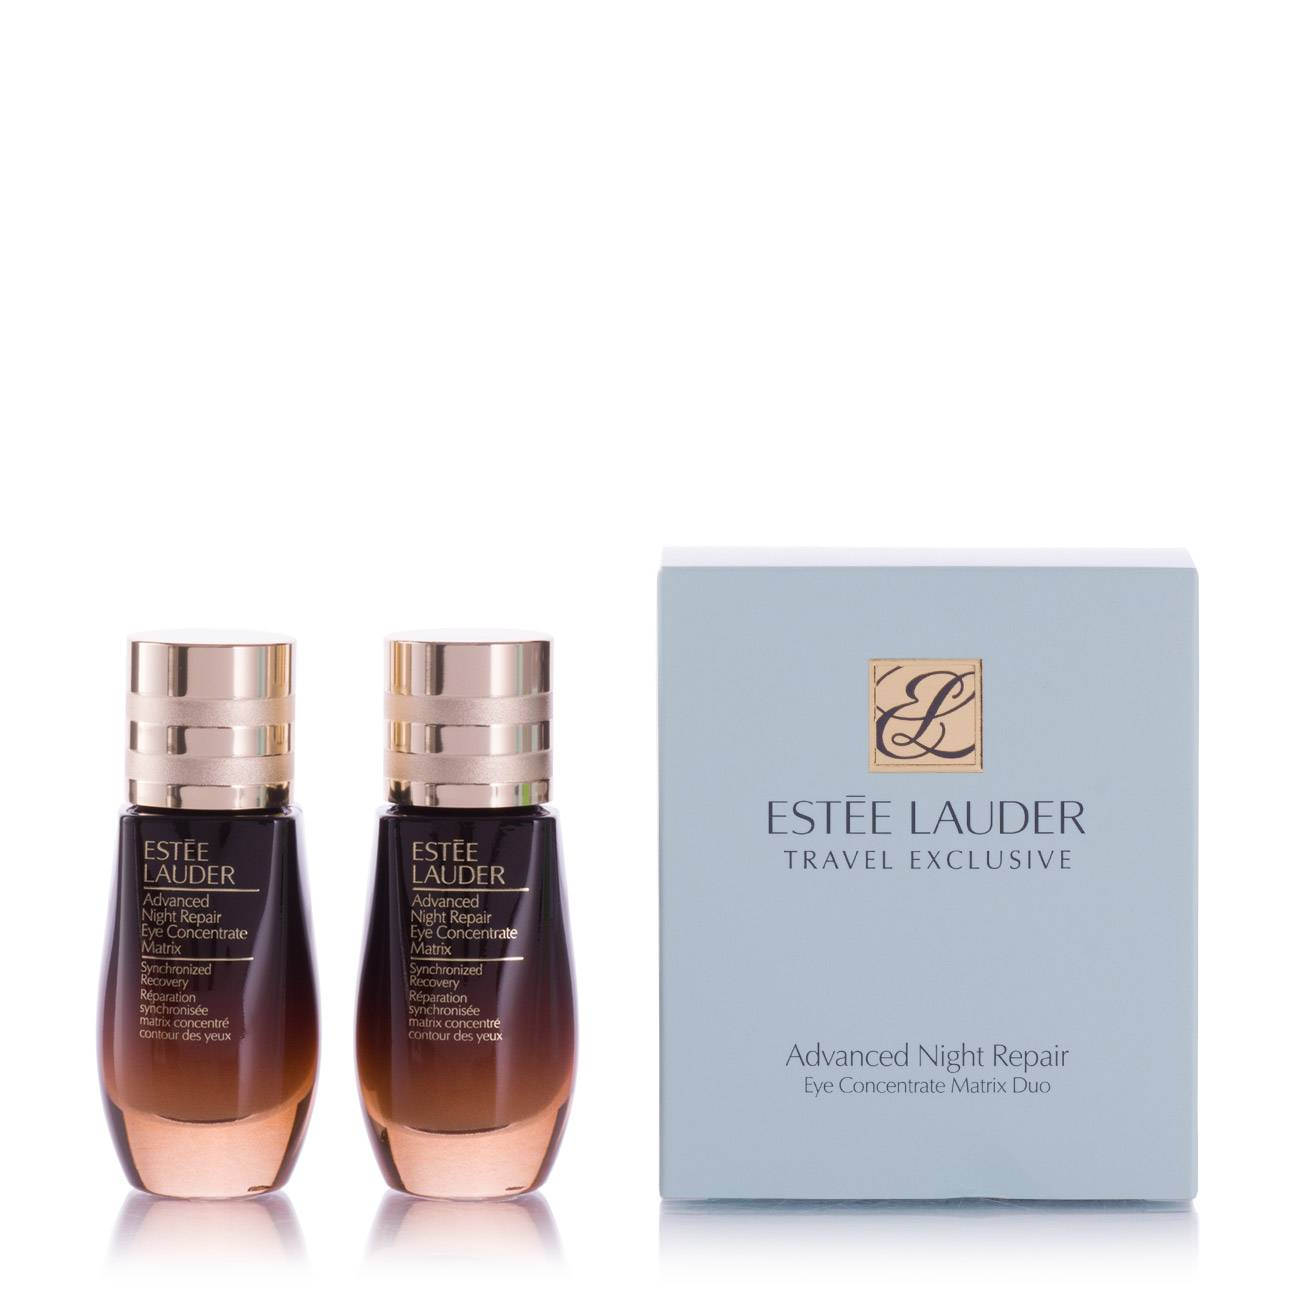 ADVANCED NIGHT REPAIR EYE CONCENTRATE MATRIX DUO SET 30 Ml